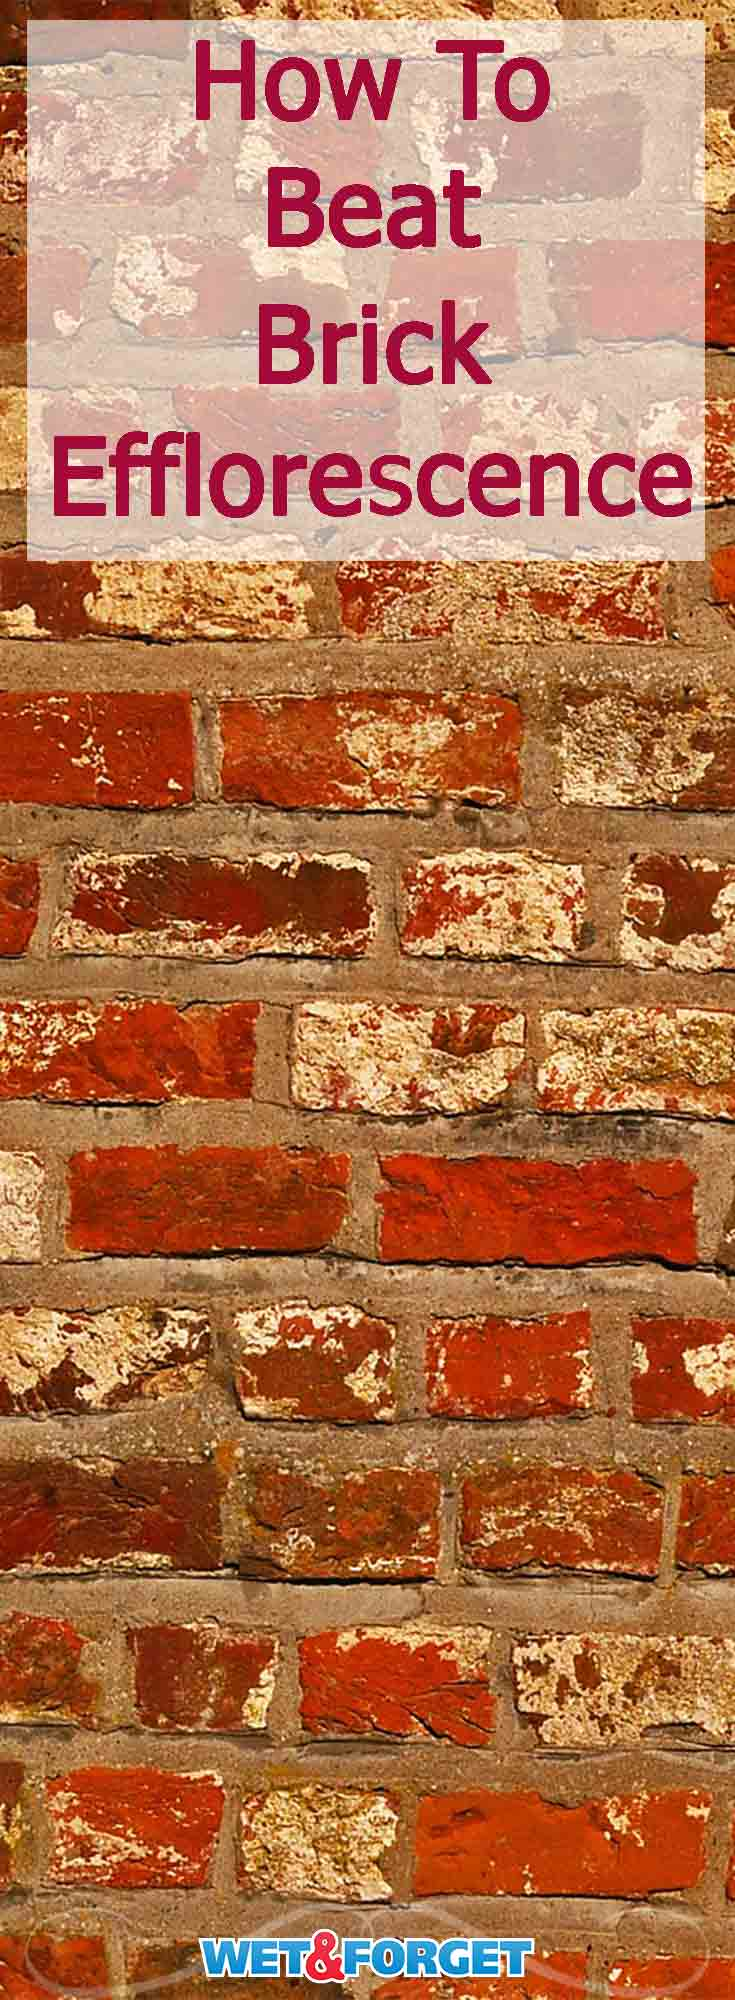 White deposits can build up on brick and give it an unattractive appearance. Learn what causes brick efflorescence and how to remove it with this easy method!